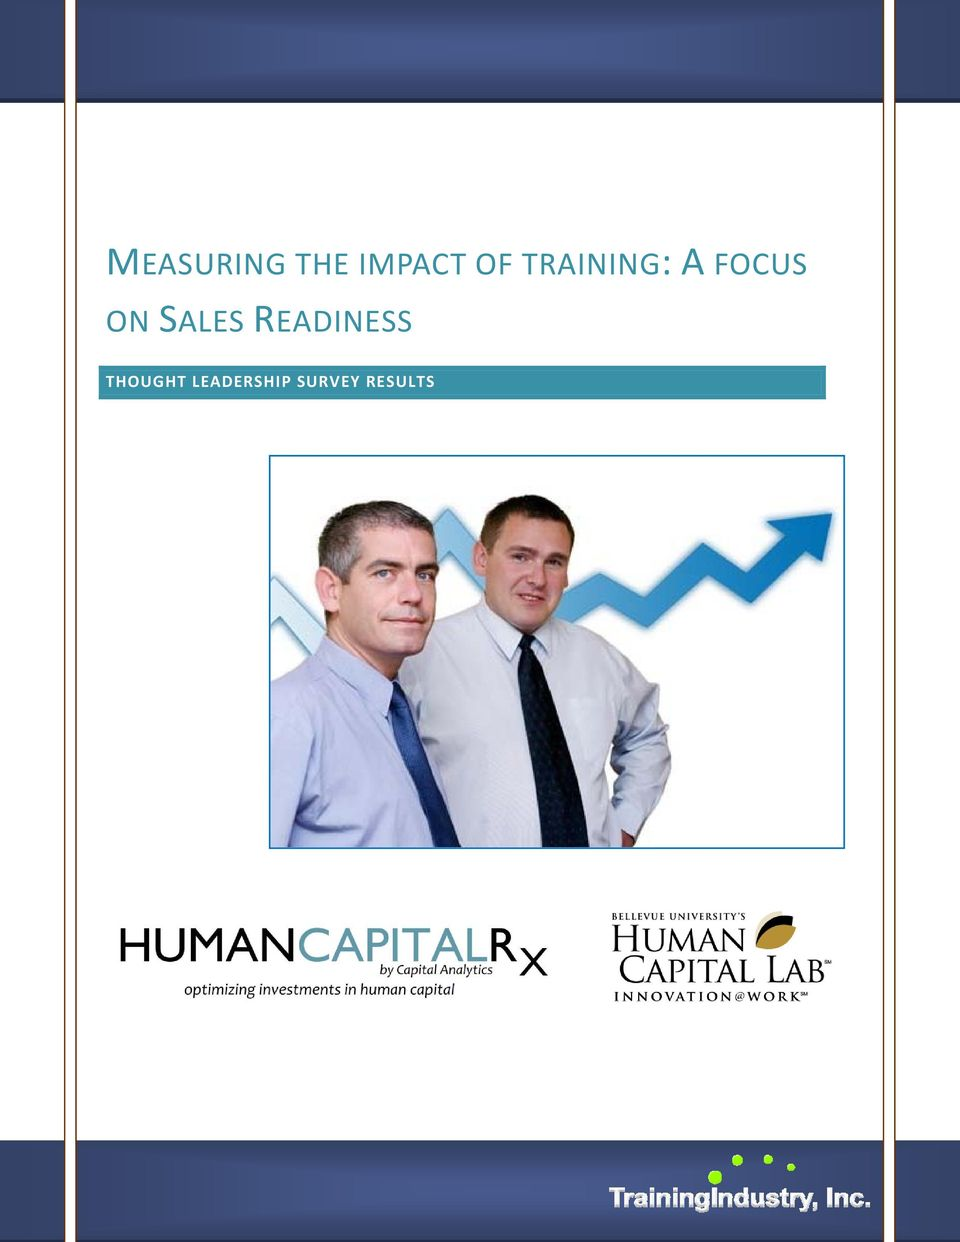 SALES READINESS THOUGHT